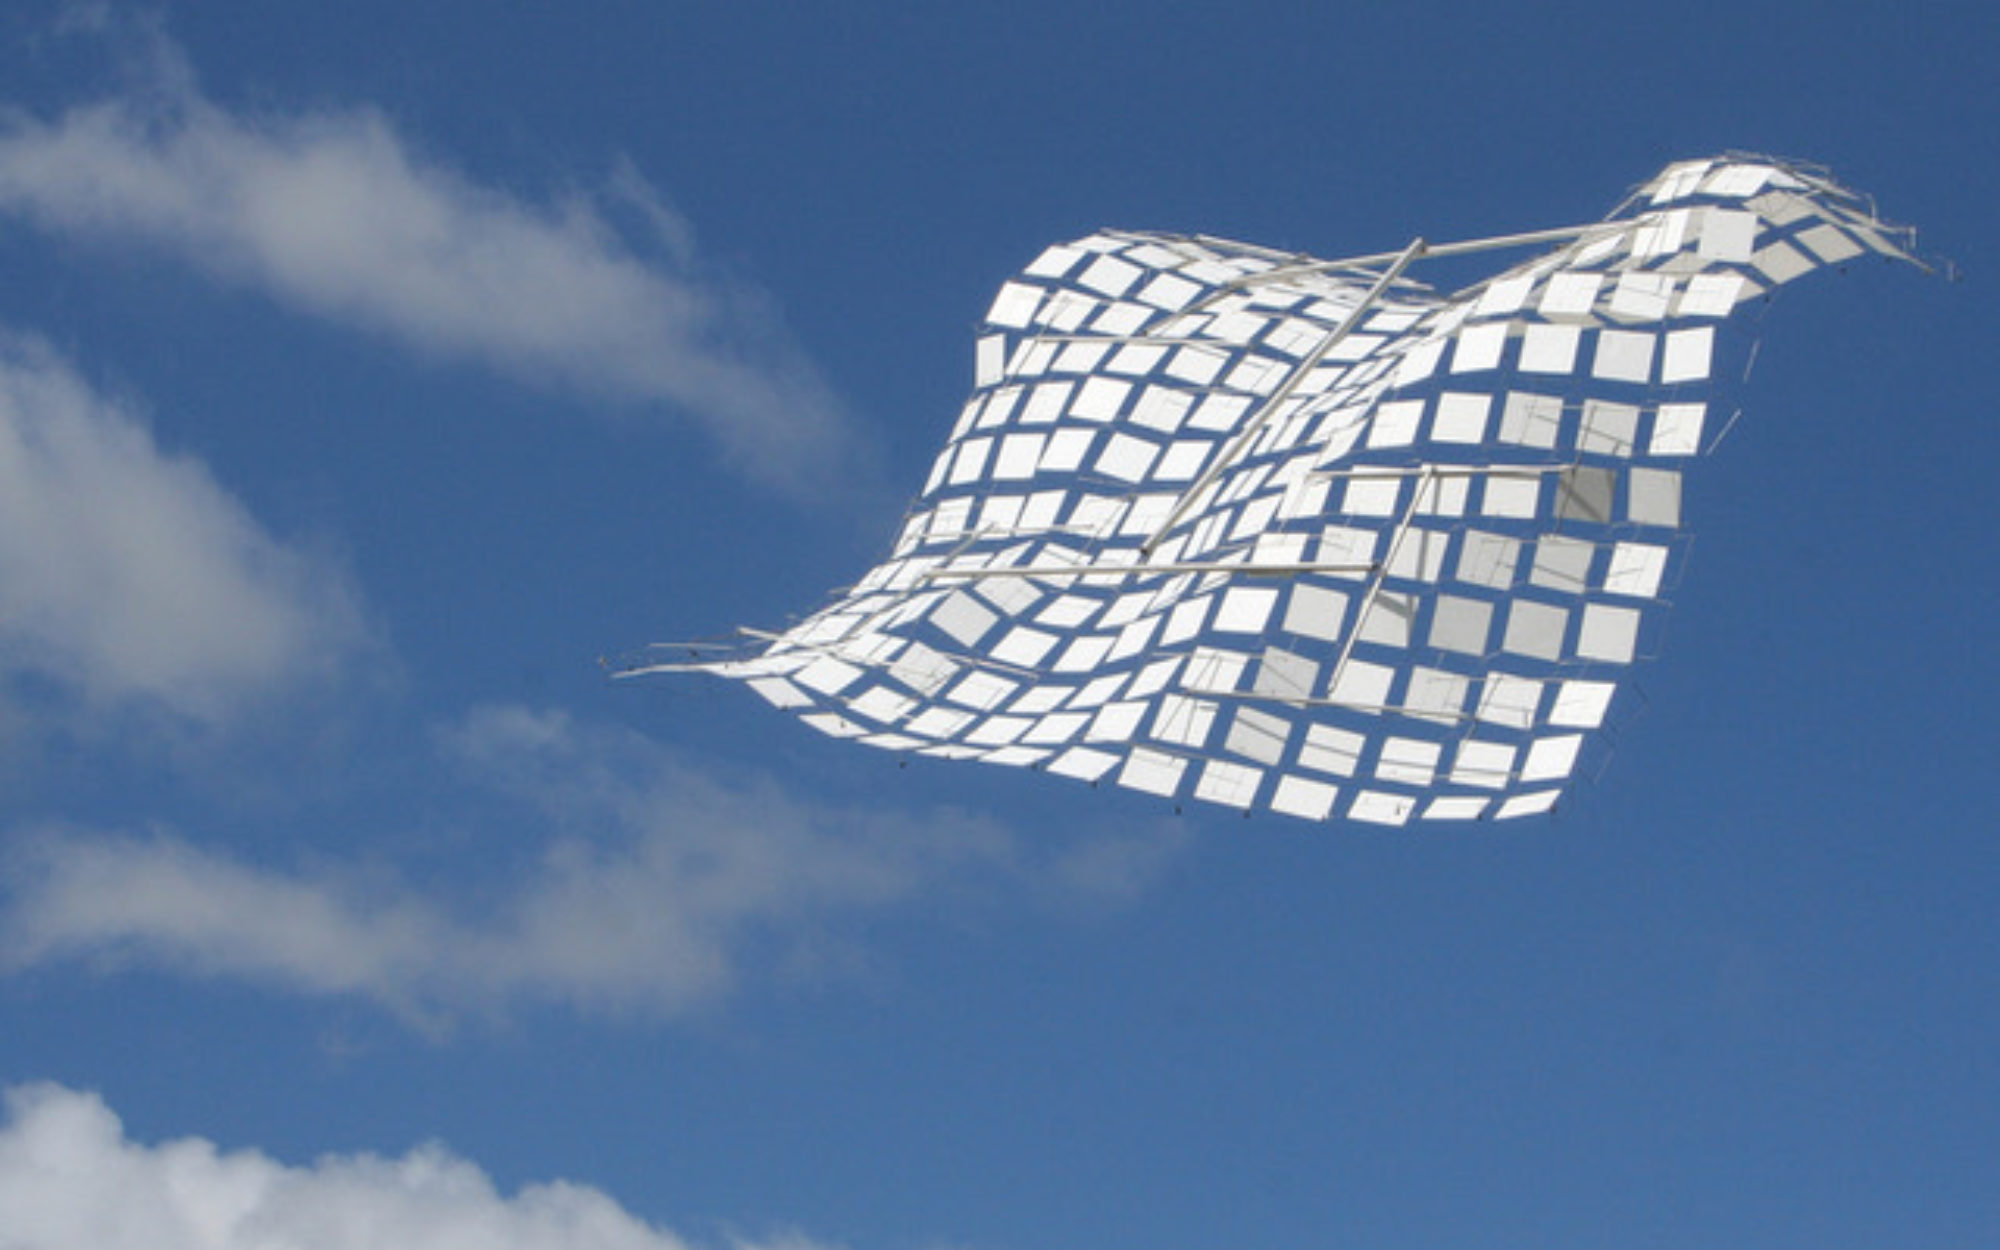 Sculpture of white squares linked together against a blue sky.